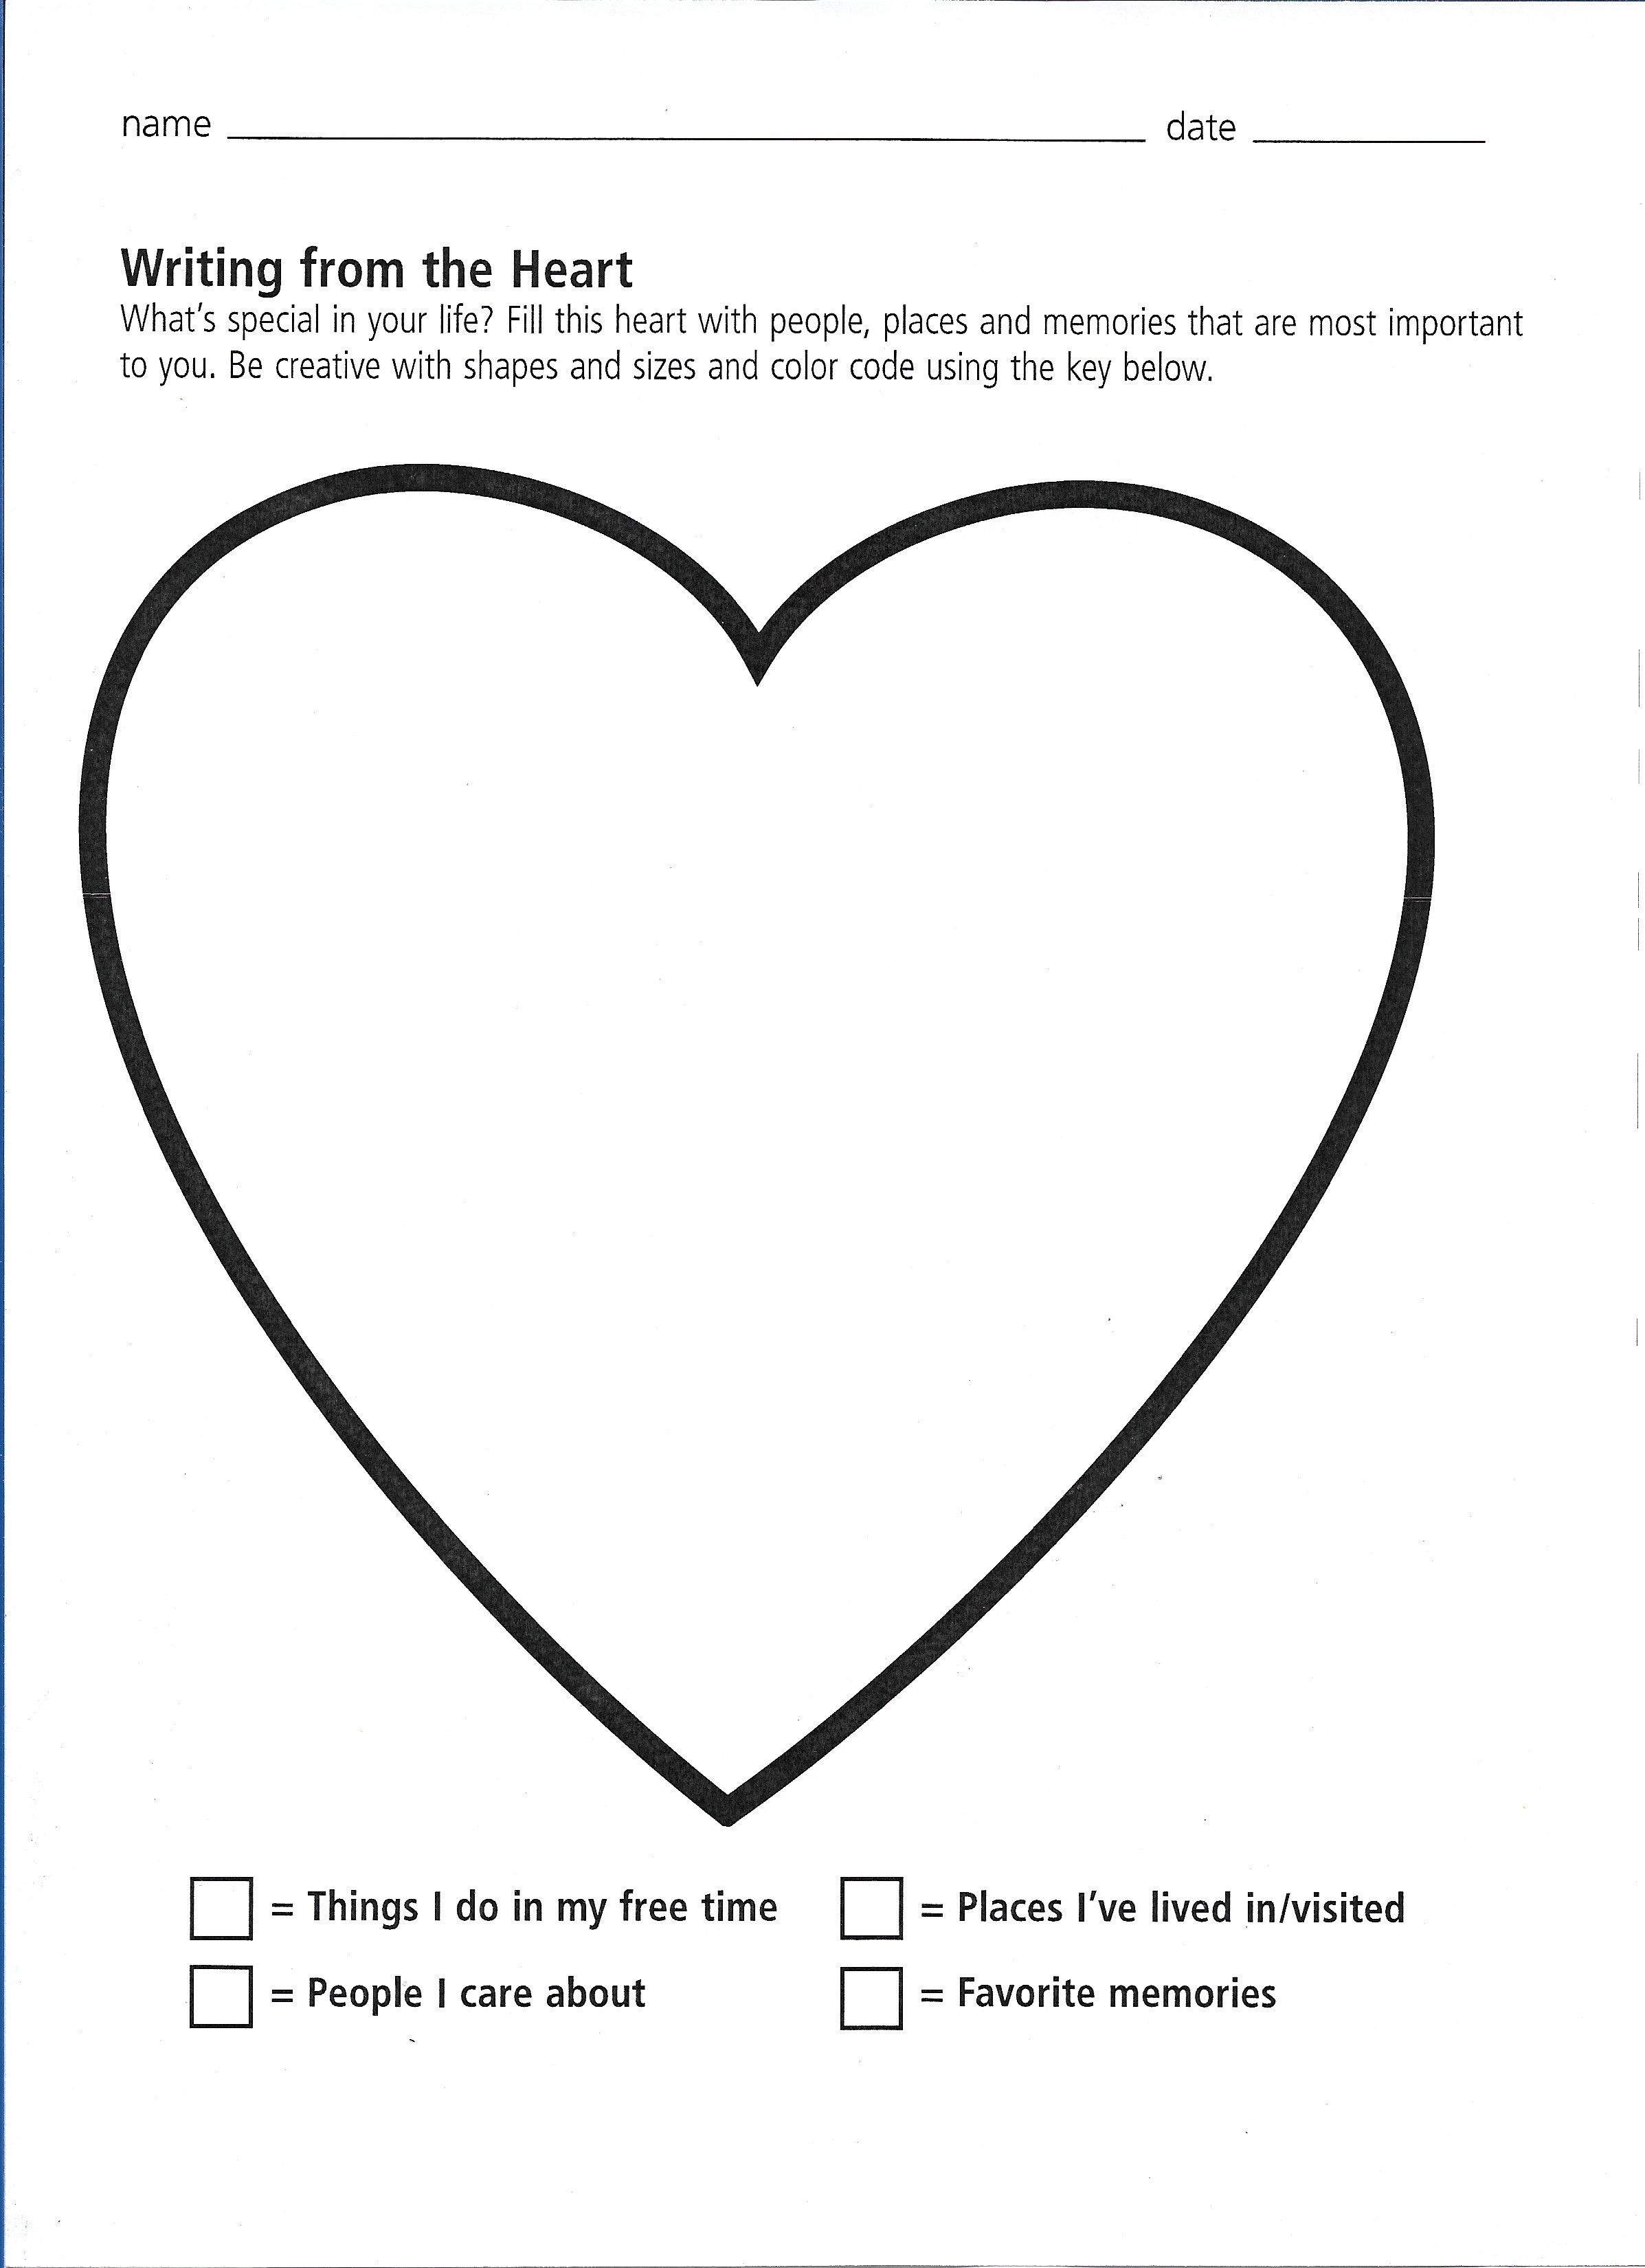 Writing From The Heart Worksheet